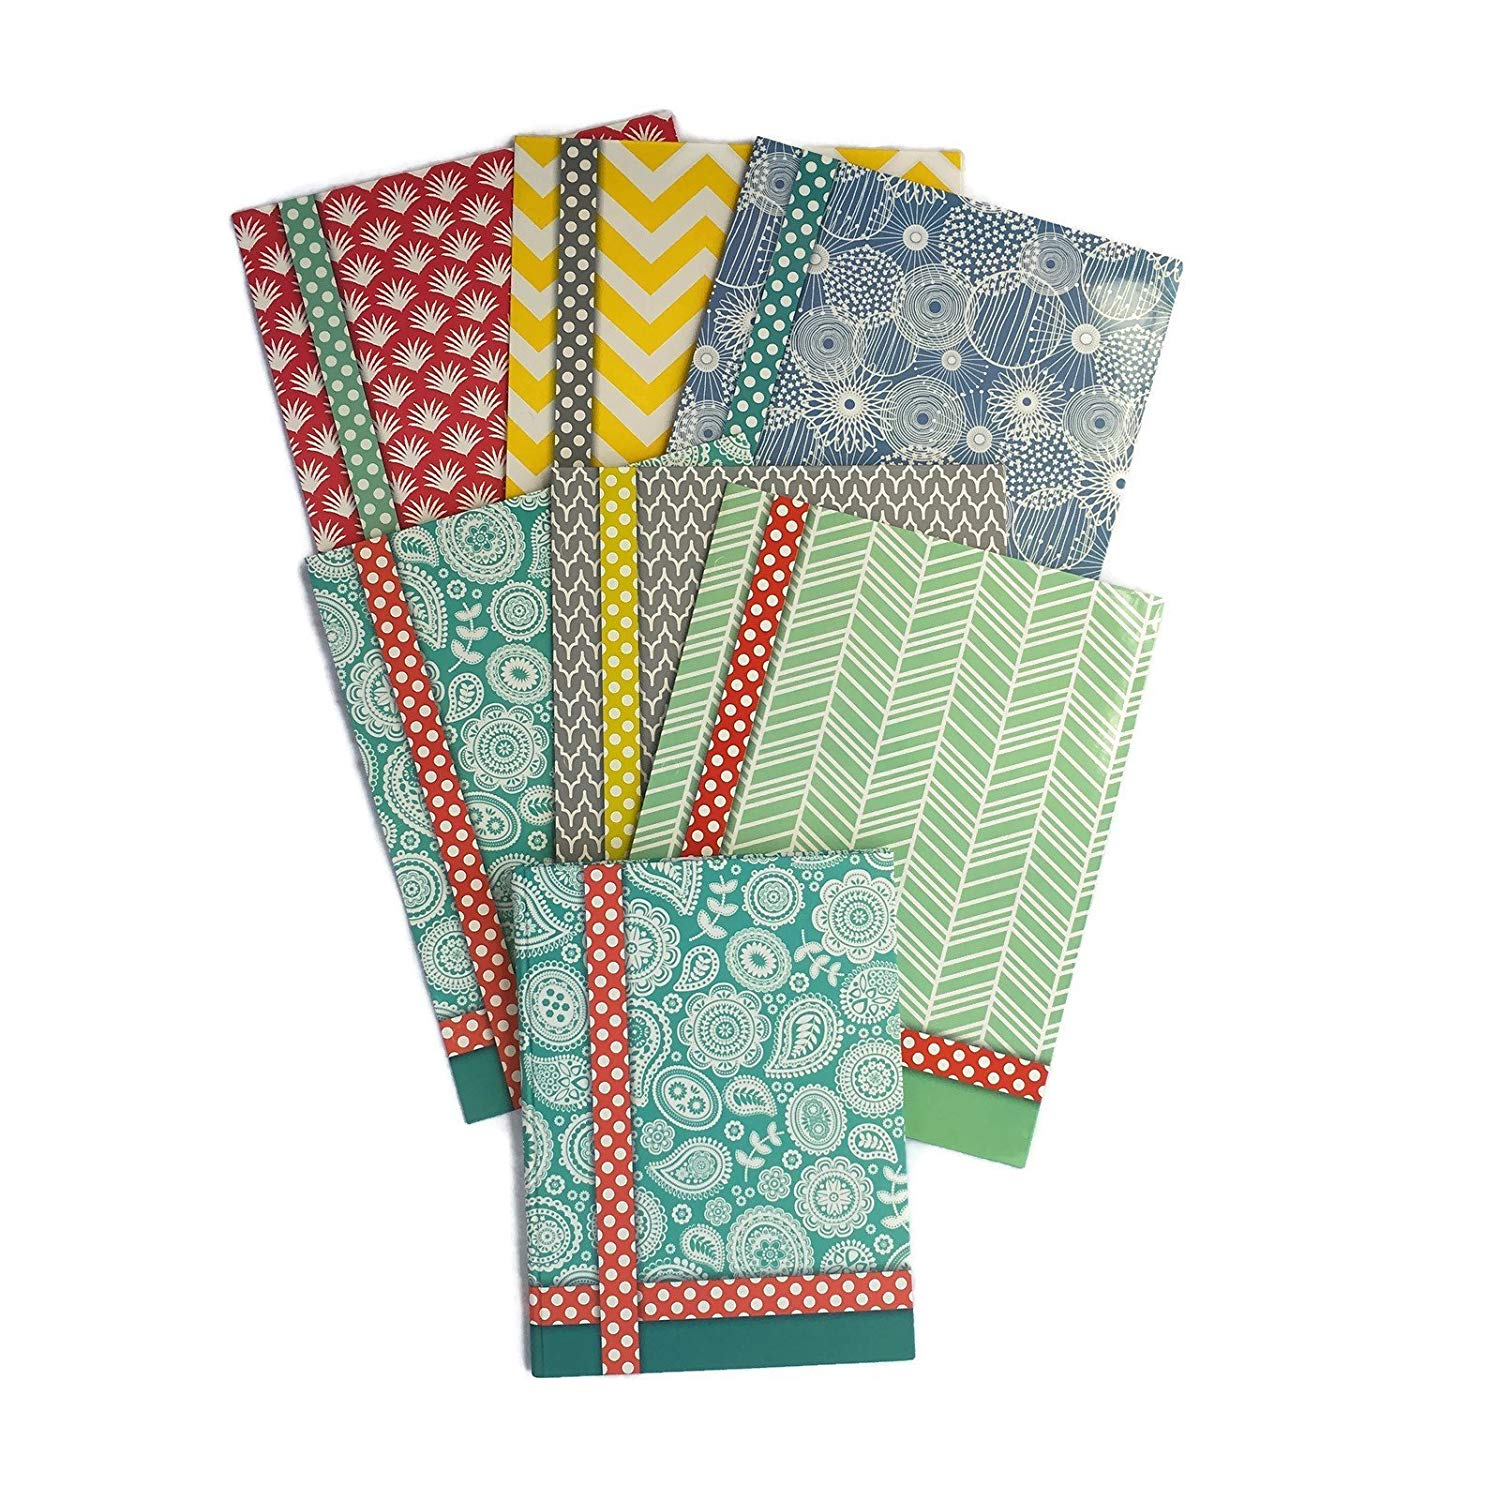 Colorful Pattern Design Belle School Supply Bundle: 7 Items: Seven Assorted Belle School Subject Folders, Plus One Matching Hardcover College Ruled Composition Notebook (Blue Notebook)